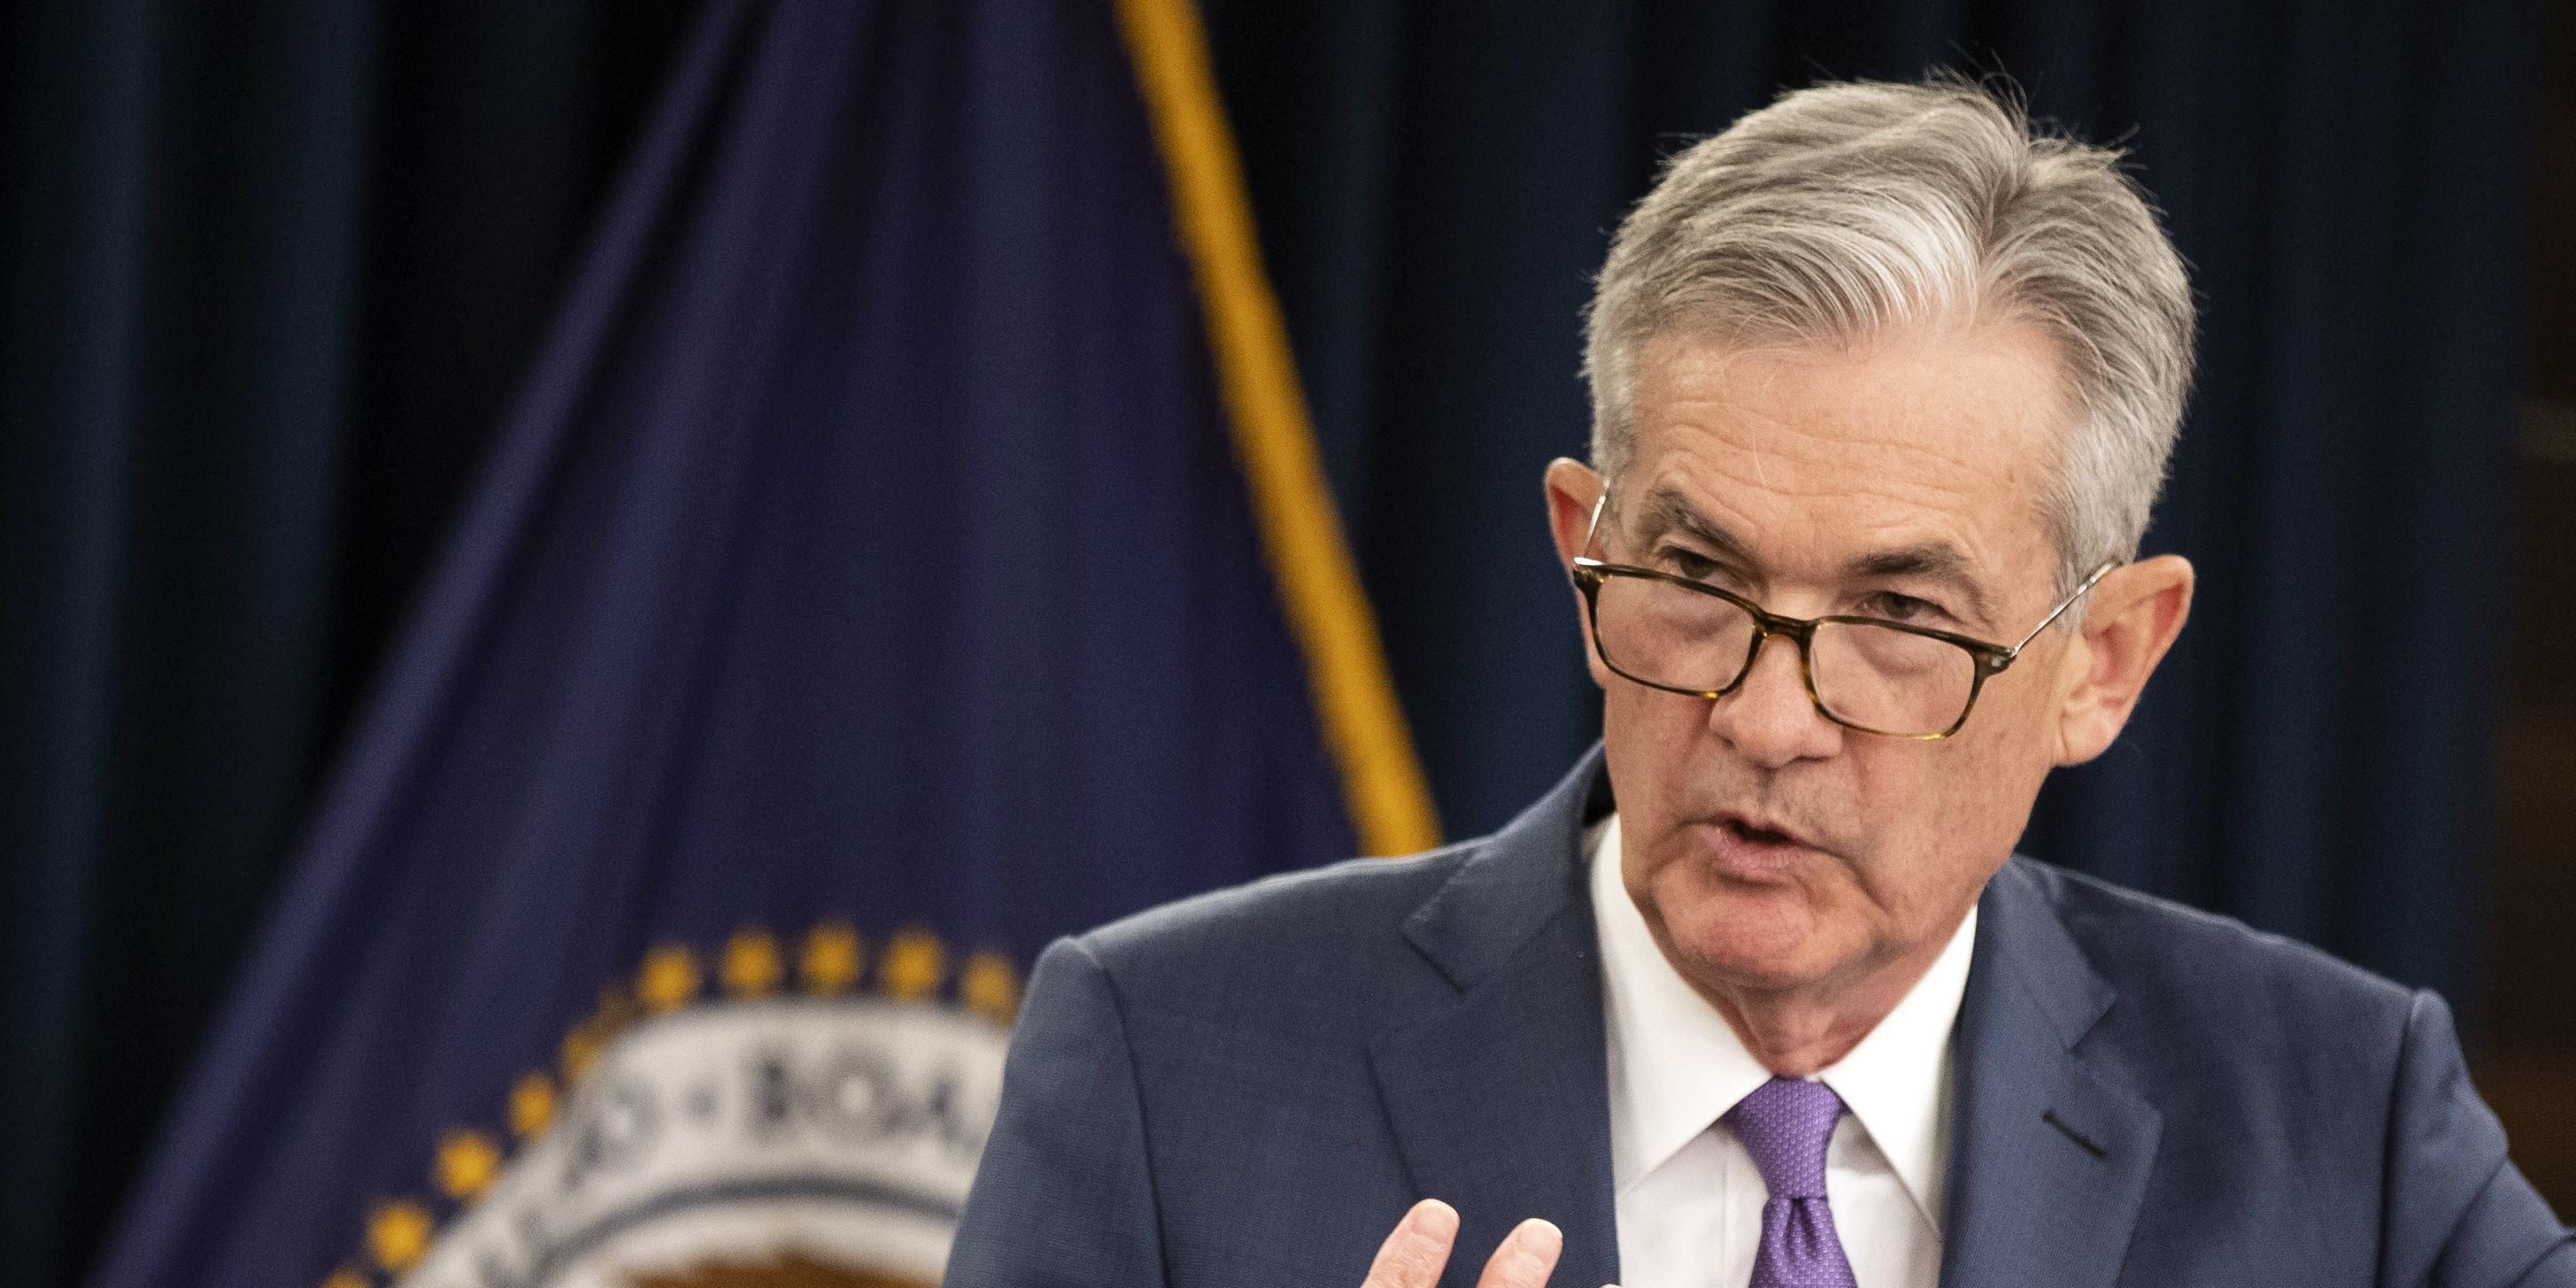 A divided Fed reduces rates but may not cut again this year